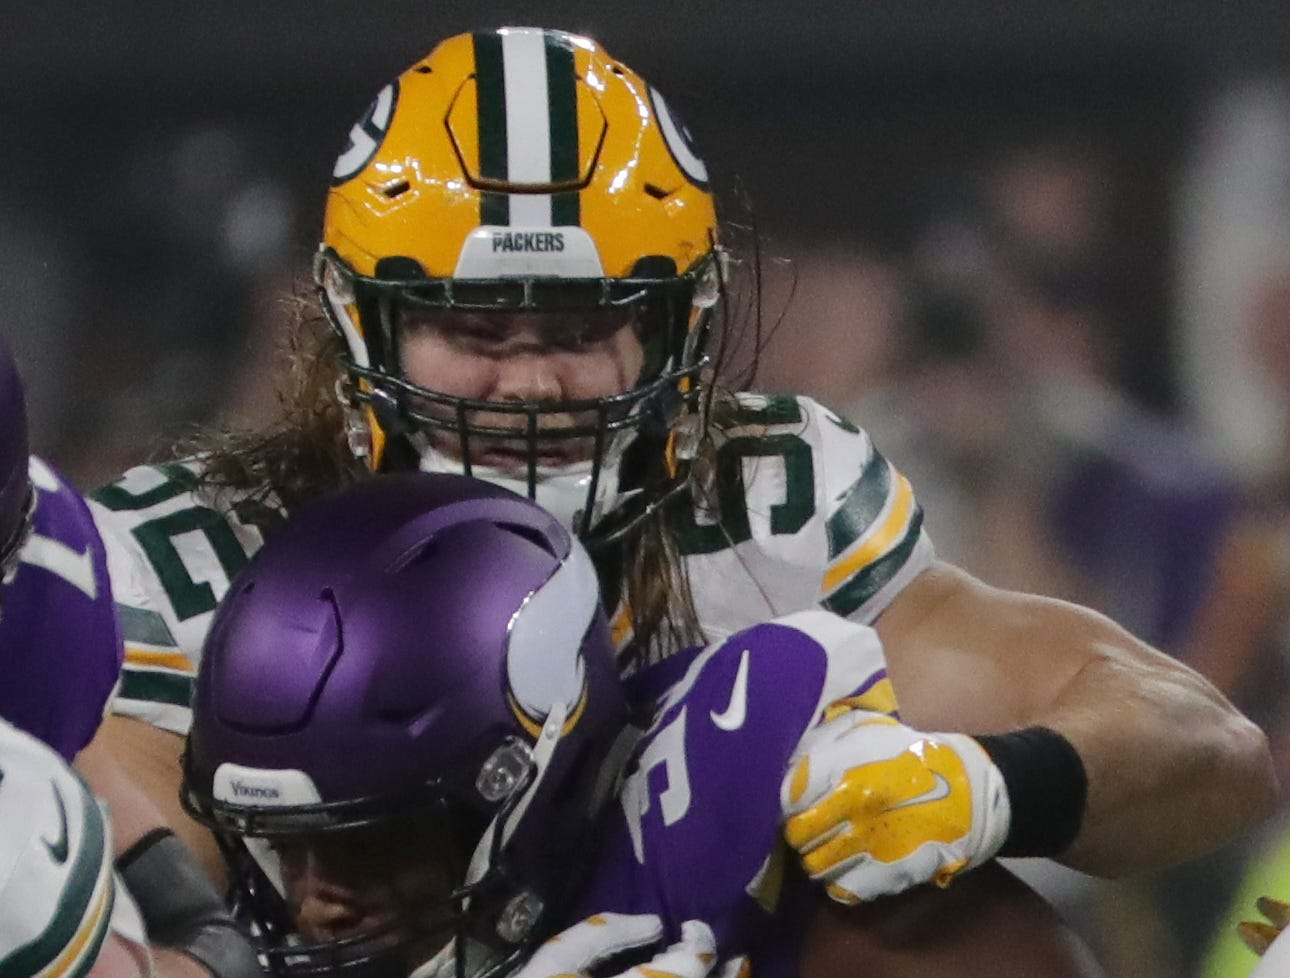 Green Bay Packers outside linebacker Clay Matthews (52) wraps up Minnesota Vikings fullback C.J. Ham (30) during the second quarter of their game Sunday, November 25, 2018 at U.S. Bank Stadium in Minneapolis, Minn.